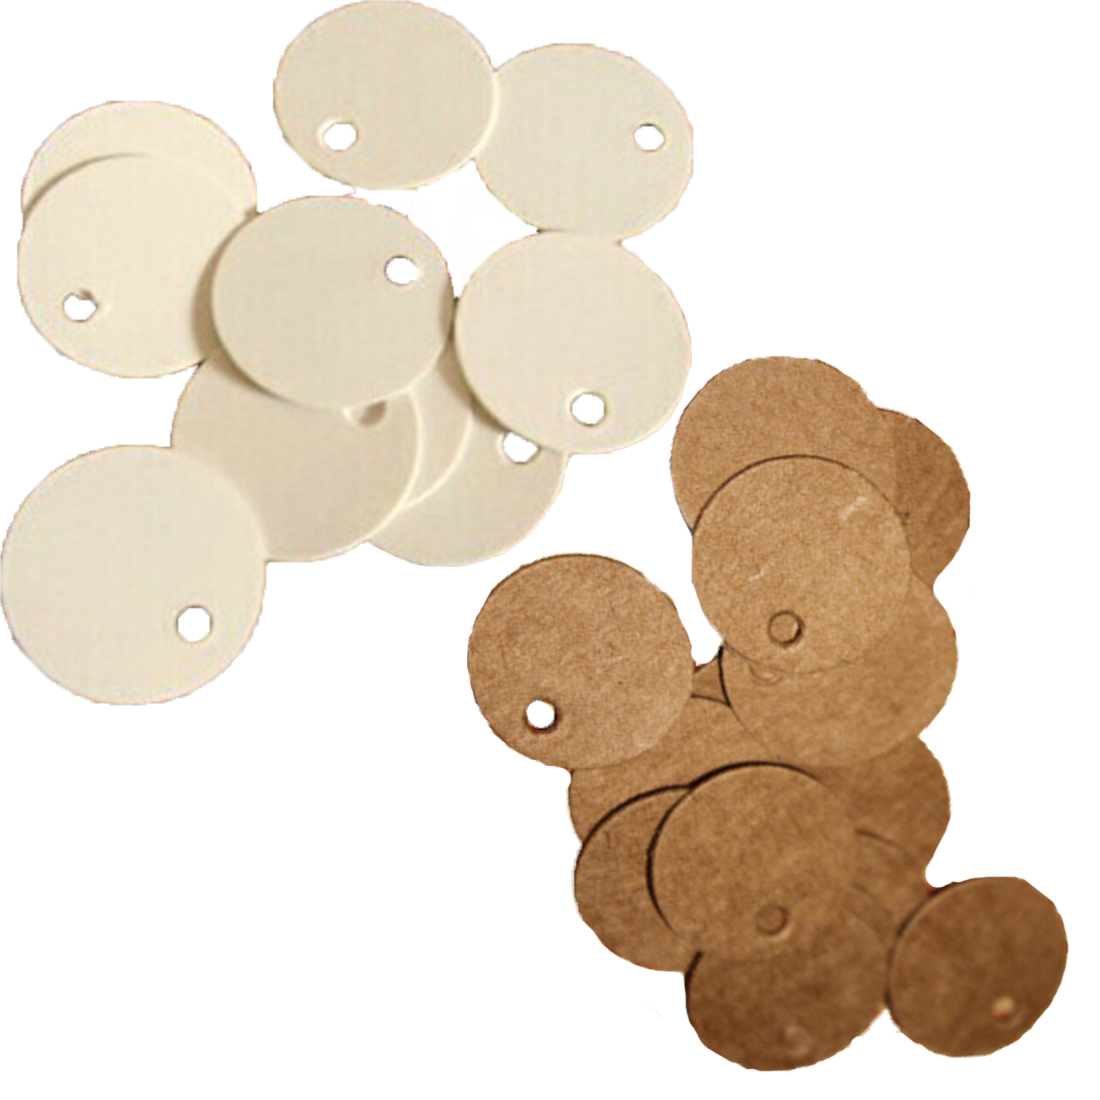 online get cheap paper circle com alibaba group shipping new 10pcs set circle shaped kraft paper gift tags wedding doorplate scallop label